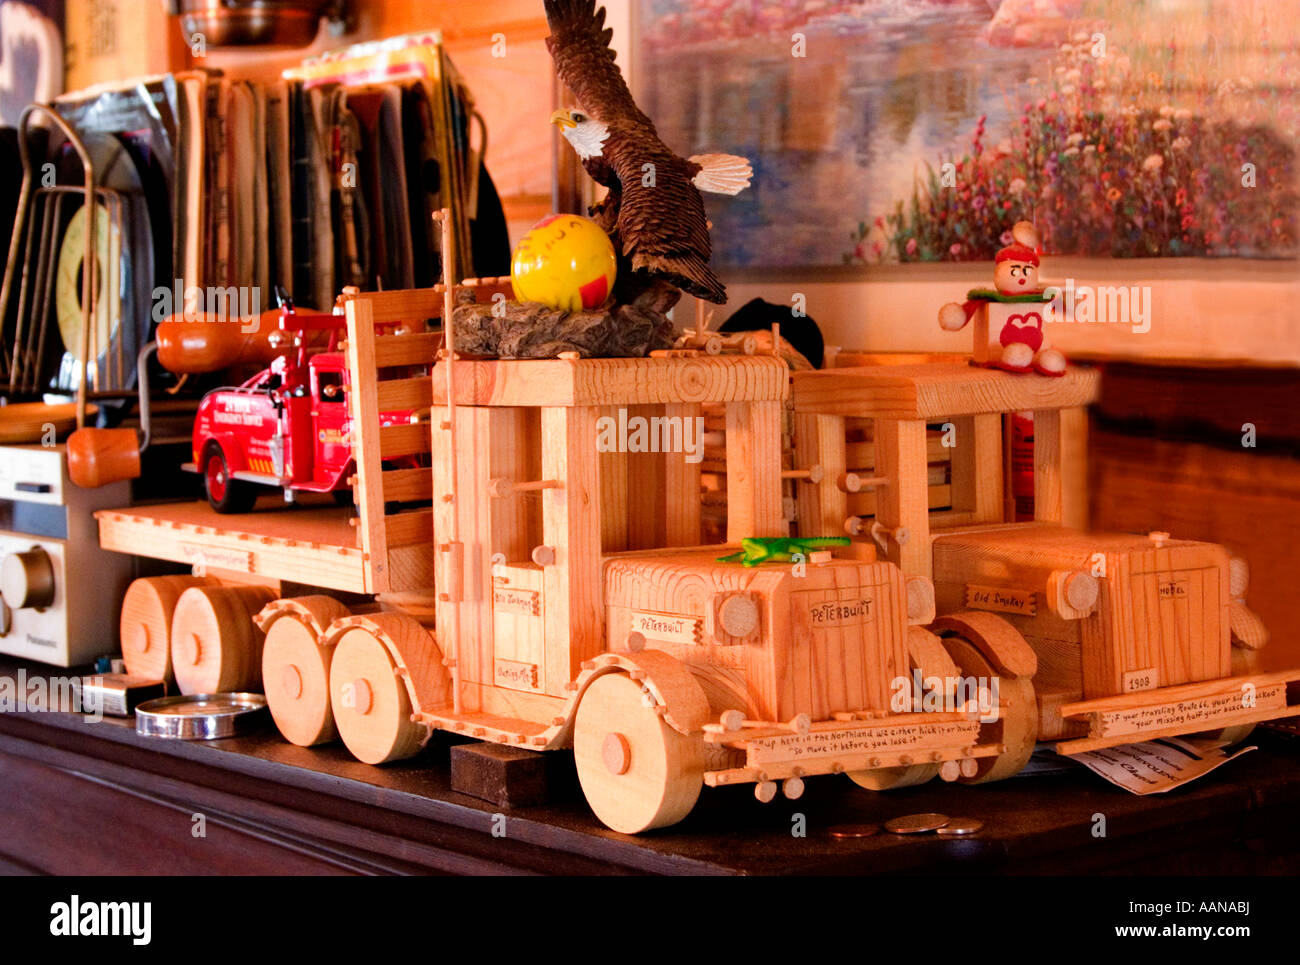 Toy handmade trucks and vintage 45 rpm vinyl records a step back into time.  Emily Minnesota USA - Stock Image